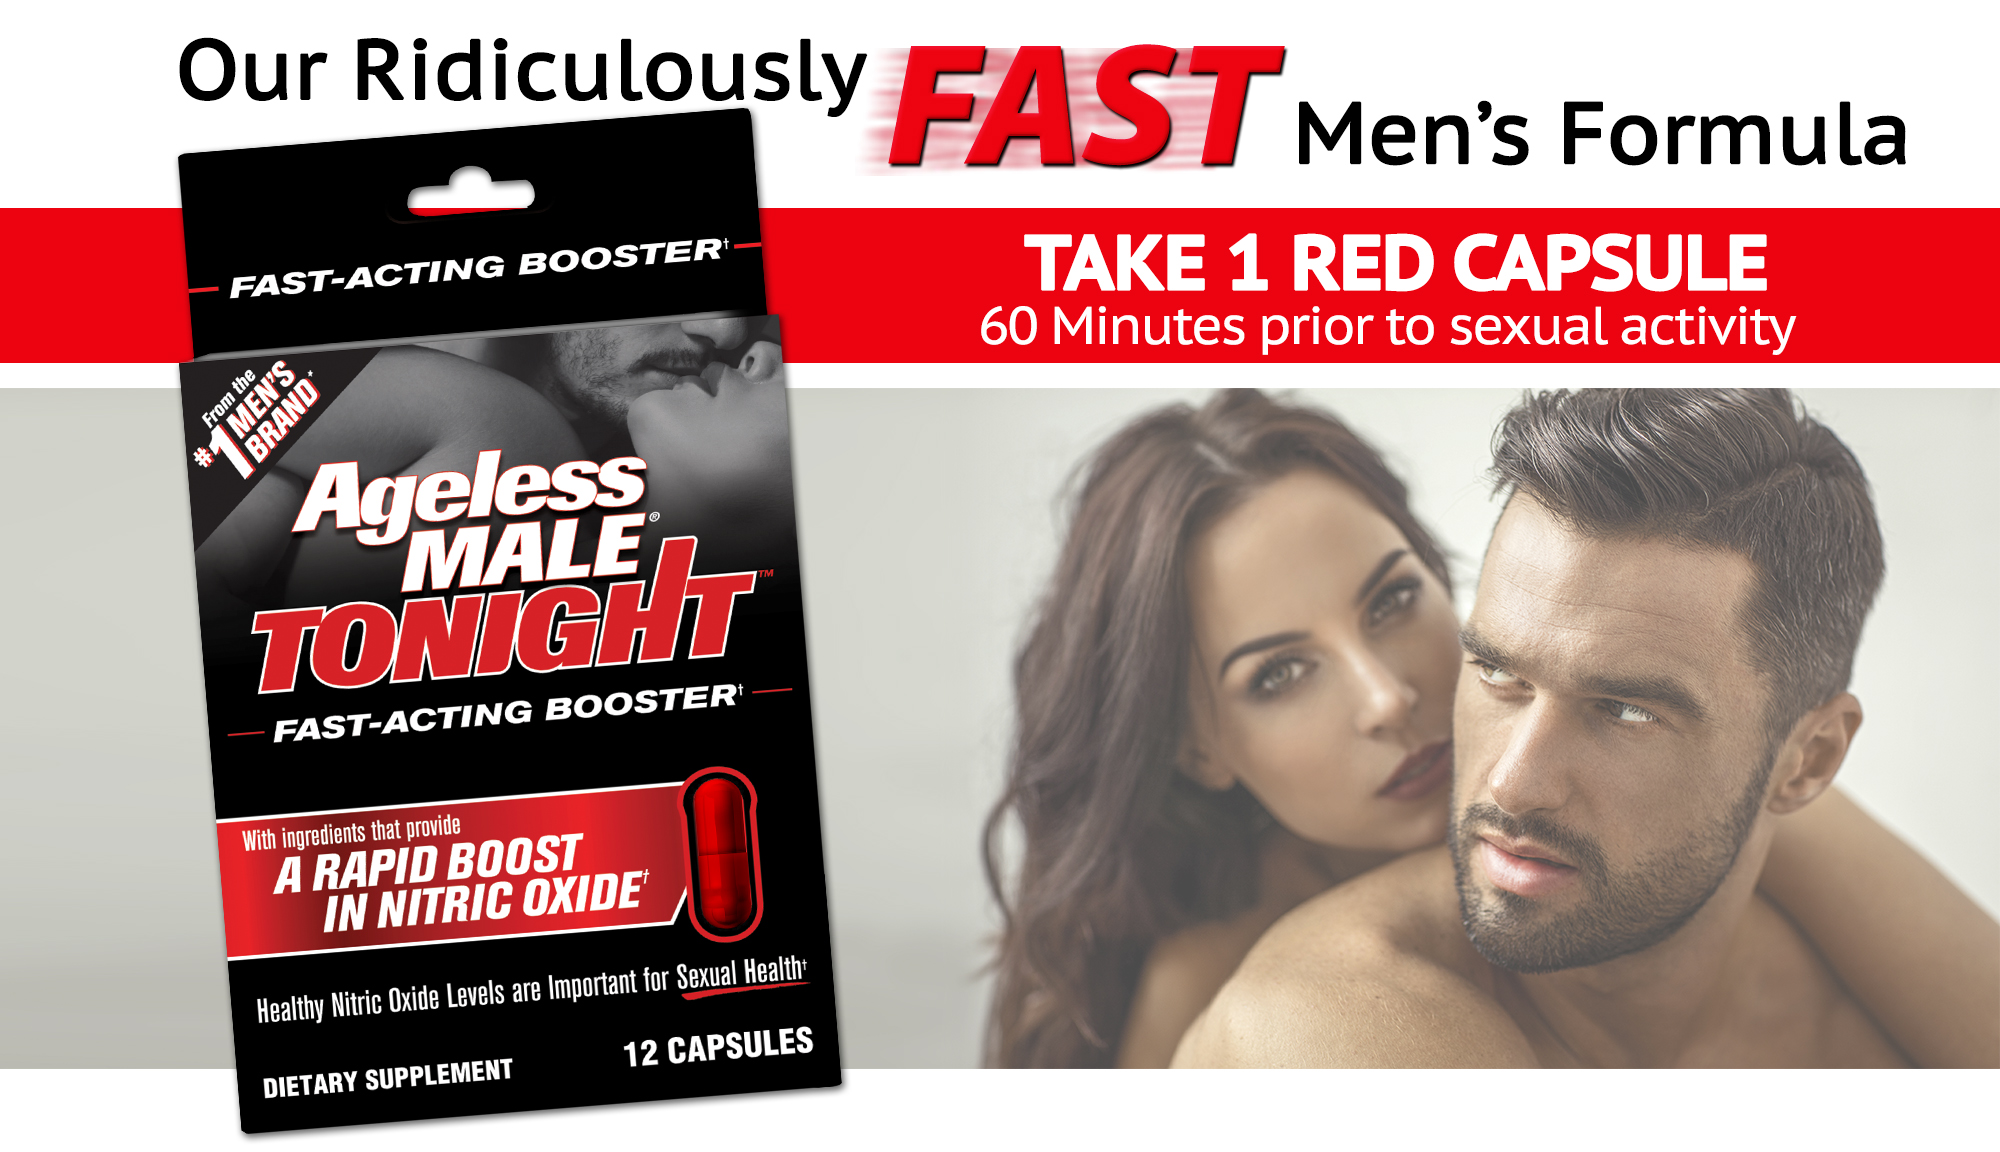 Ageless Male Tonight Rapid Nitric Oxide Booster, 12 Doses